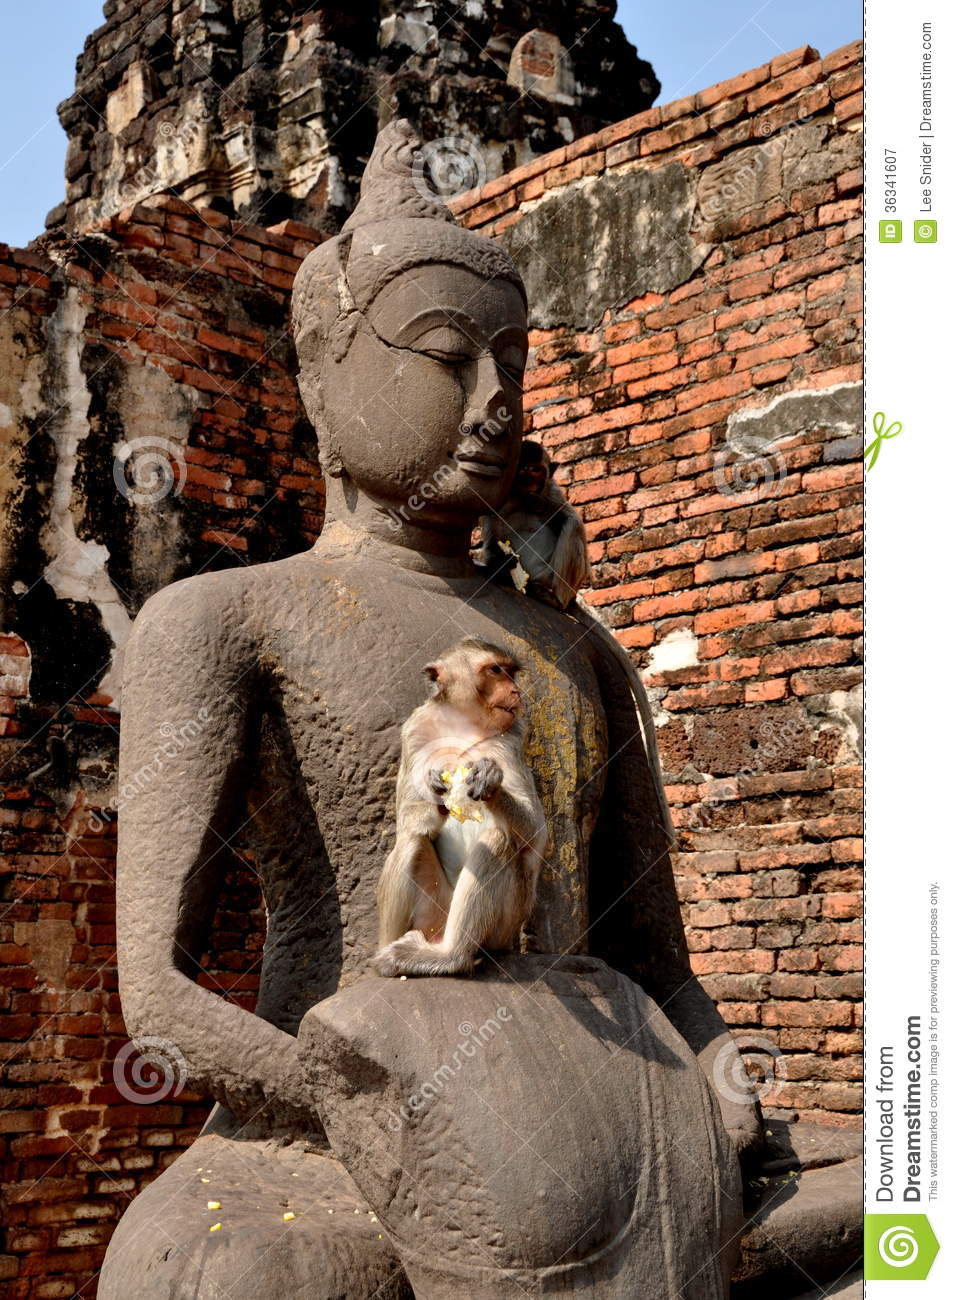 monkey eating a piece of corn-on-the cob sitting on a Buddha statue ...